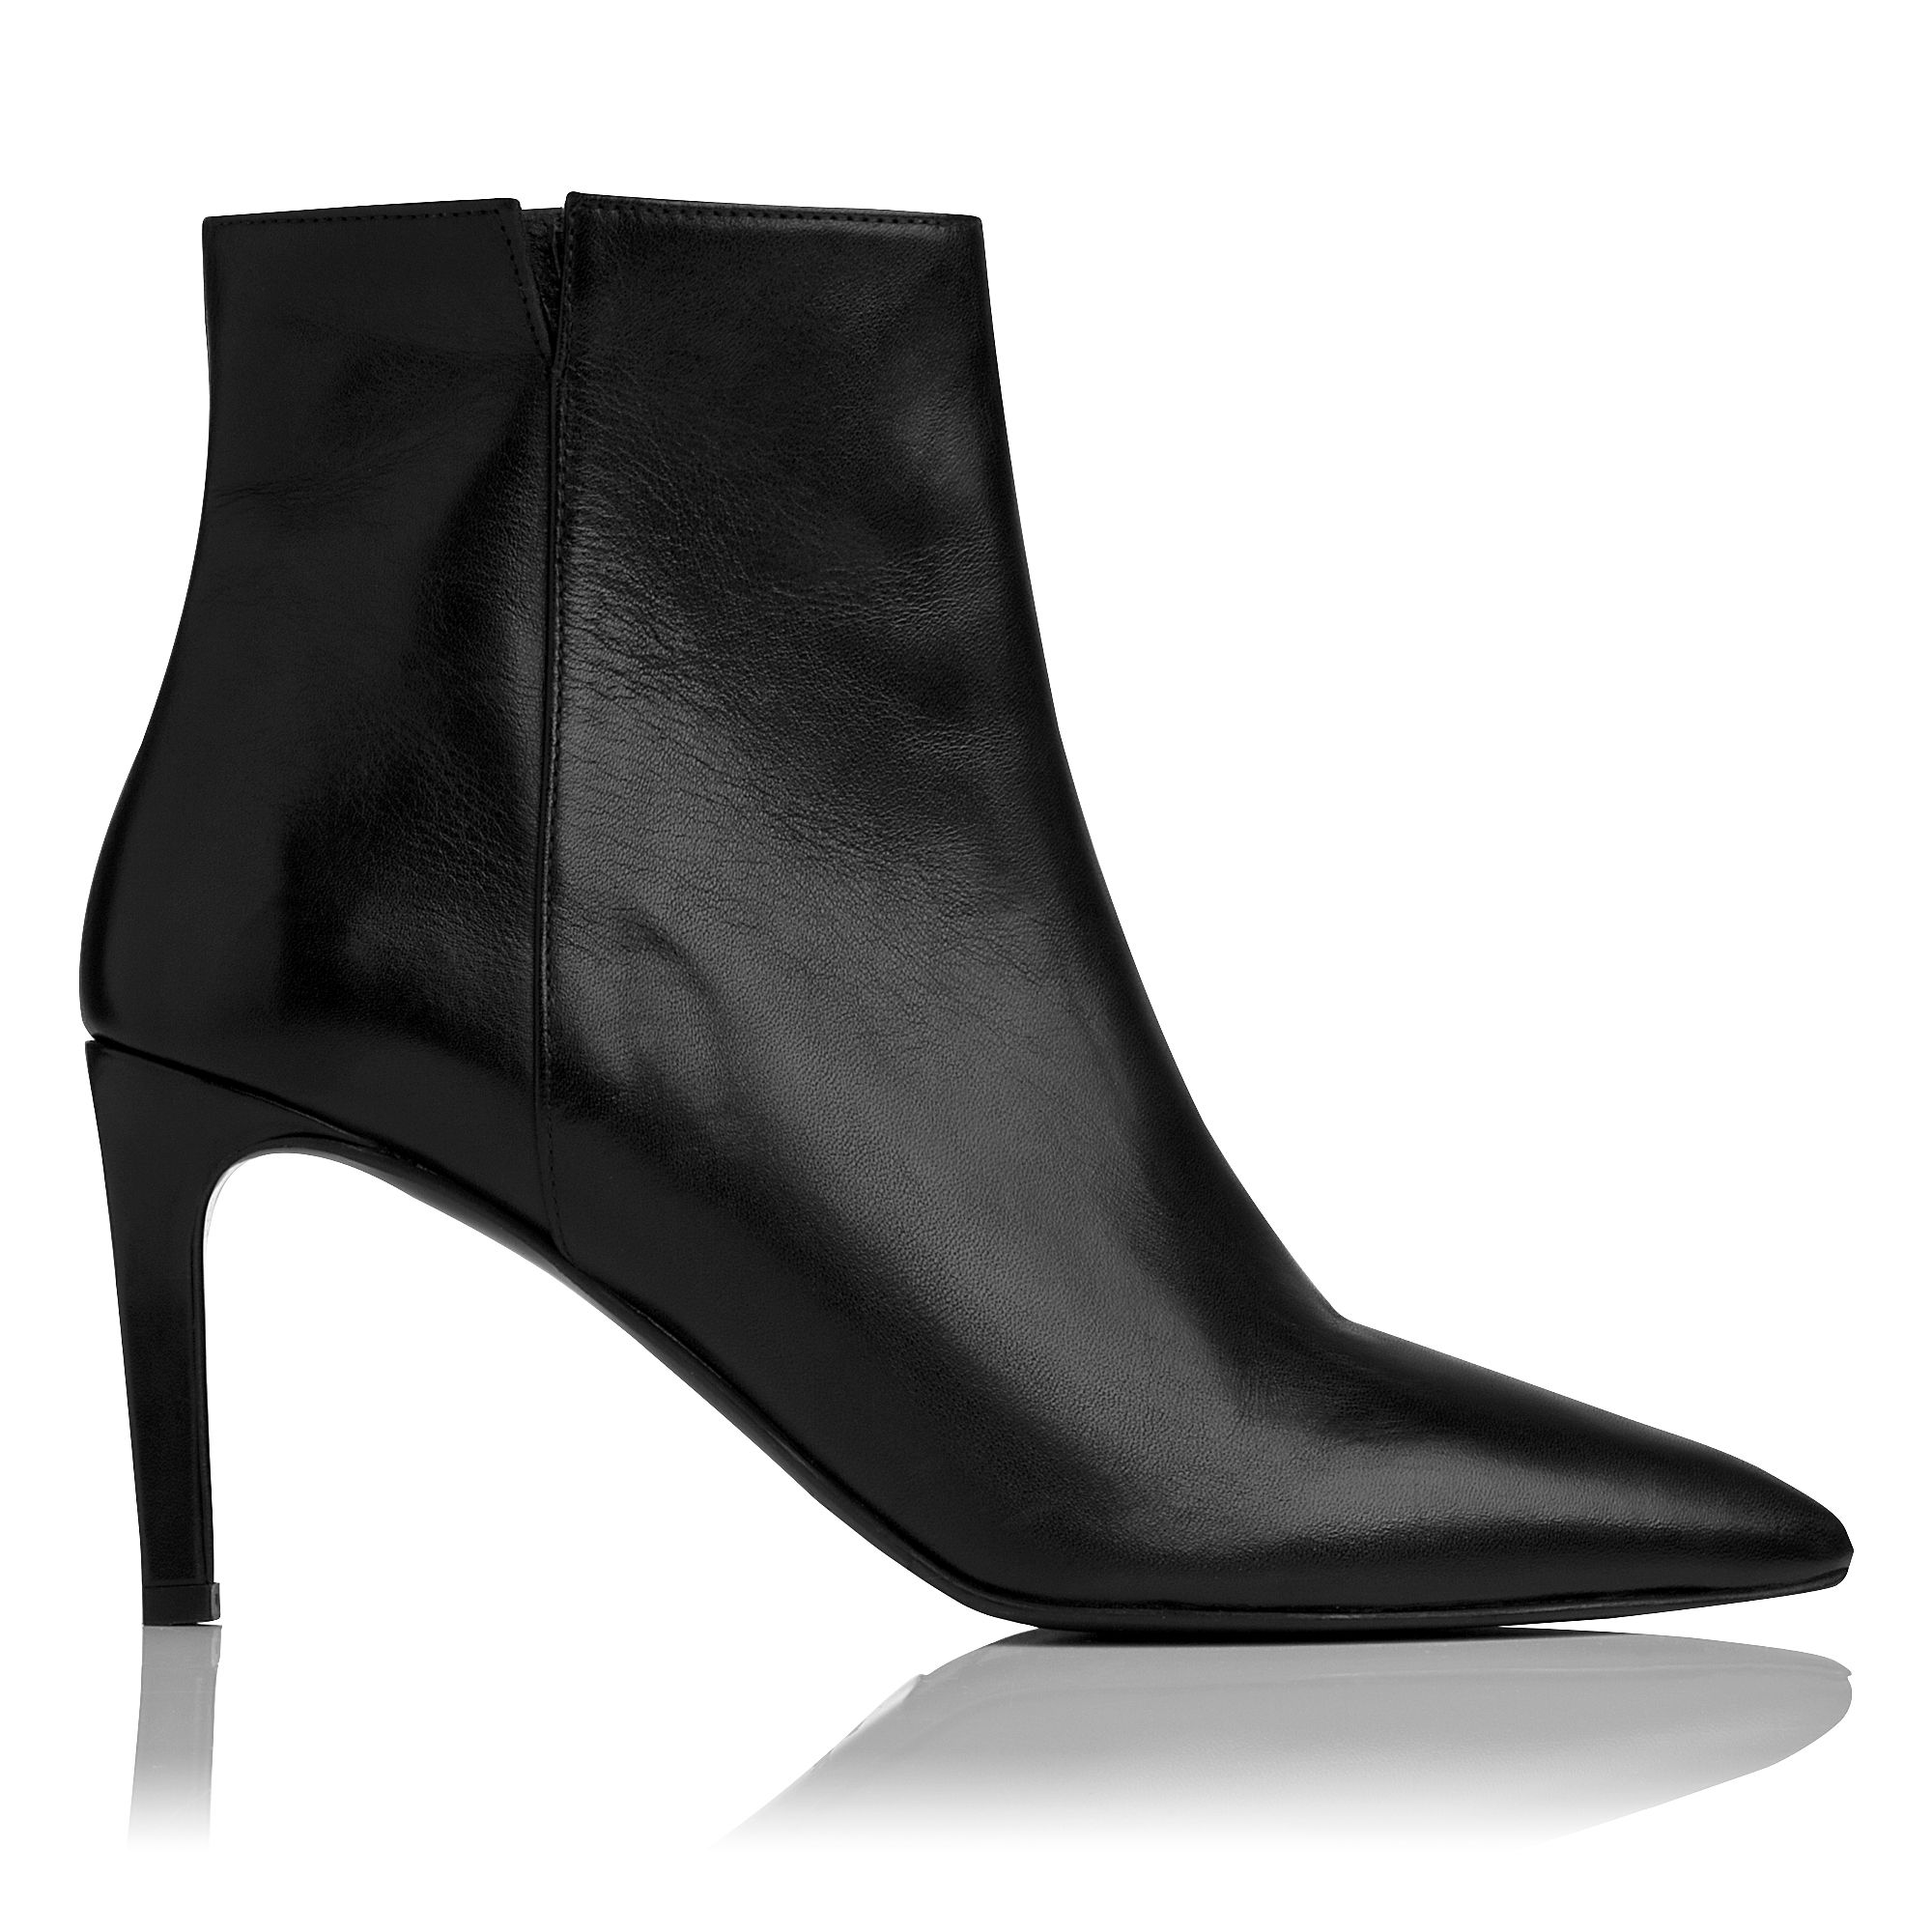 Rosa single sole pointed ankle boots